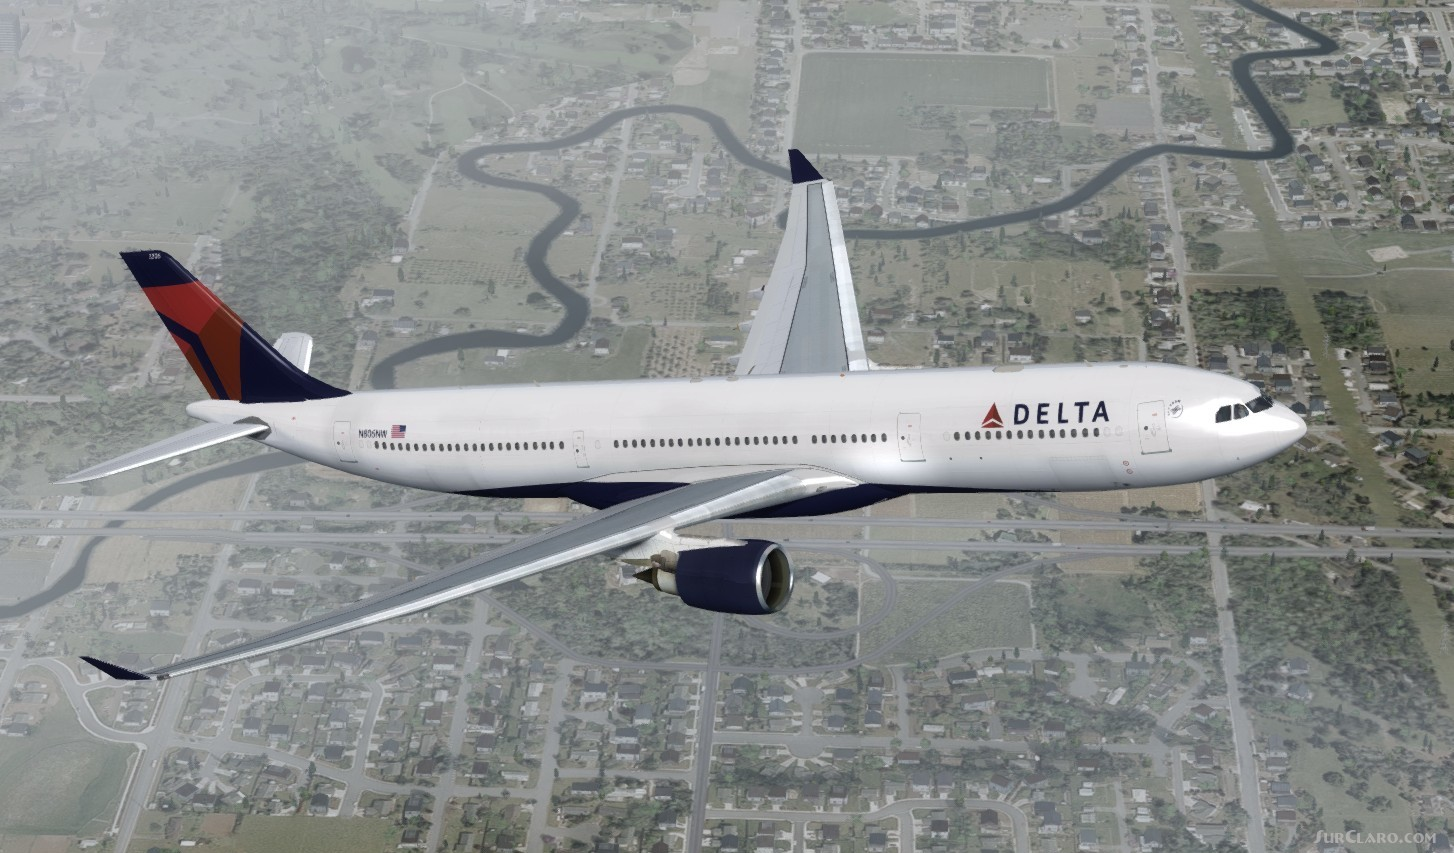 fsx p3d airbus a330 300 delta airlines package v2 aircraft rh surclaro com Airbus A330 -300 Seating Delta Delta Airbus A330 -300